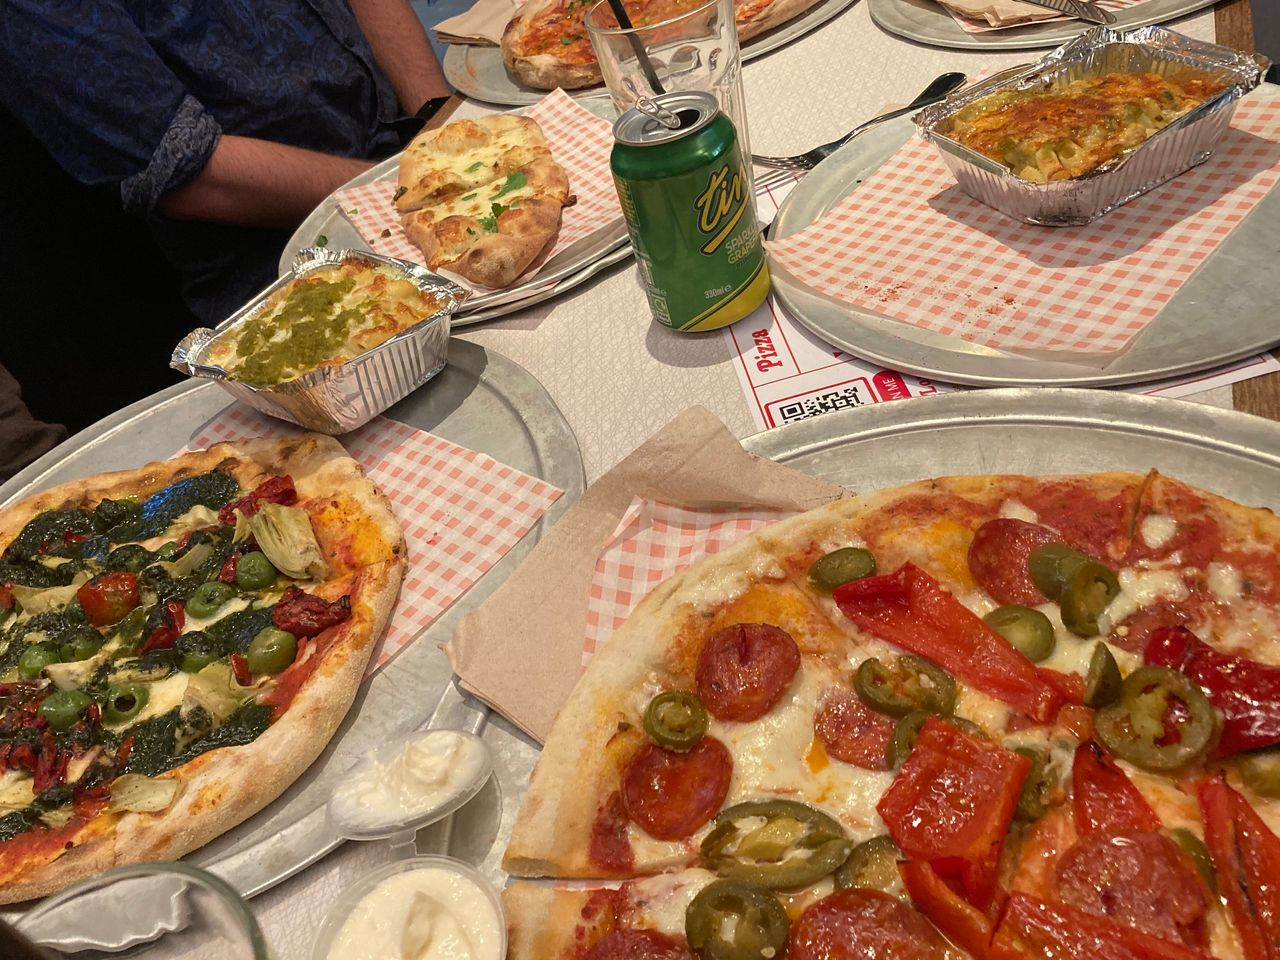 :-stocking-up-on-half-price-sides-at-voodoo-rays-pizzeria-–-a-taste-of-the-uk.'s-restaurant-rescue-package